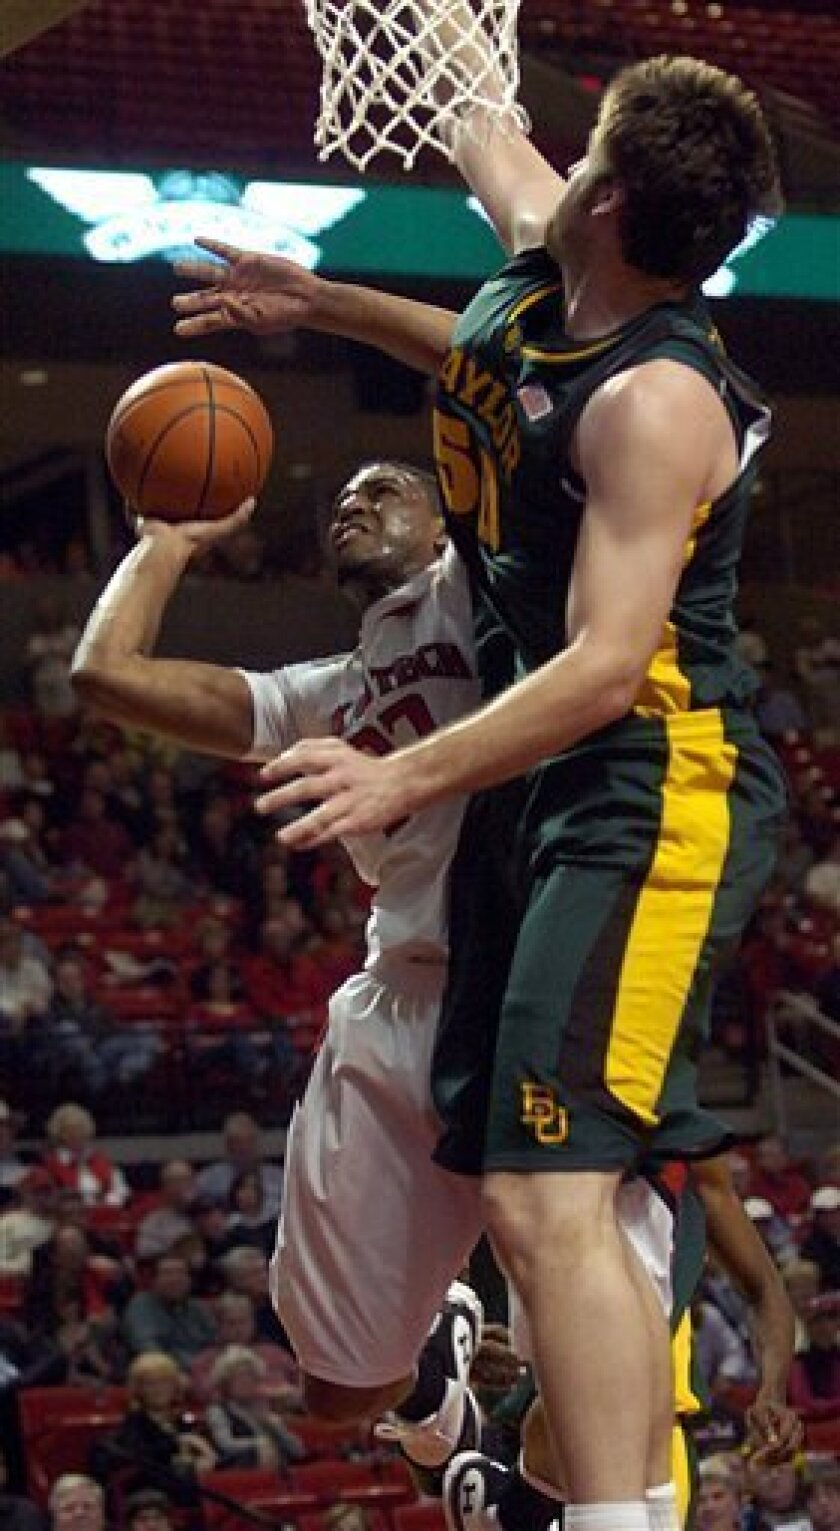 Baylor's Josh Lomers, right, rejects a shot from Texas Tech's Mike Singletary during the first half of an NCAA college basketball game Tuesday, March 2, 2010, in Lubbock, Texas. (AP Photo/Geoffrey McAllister)